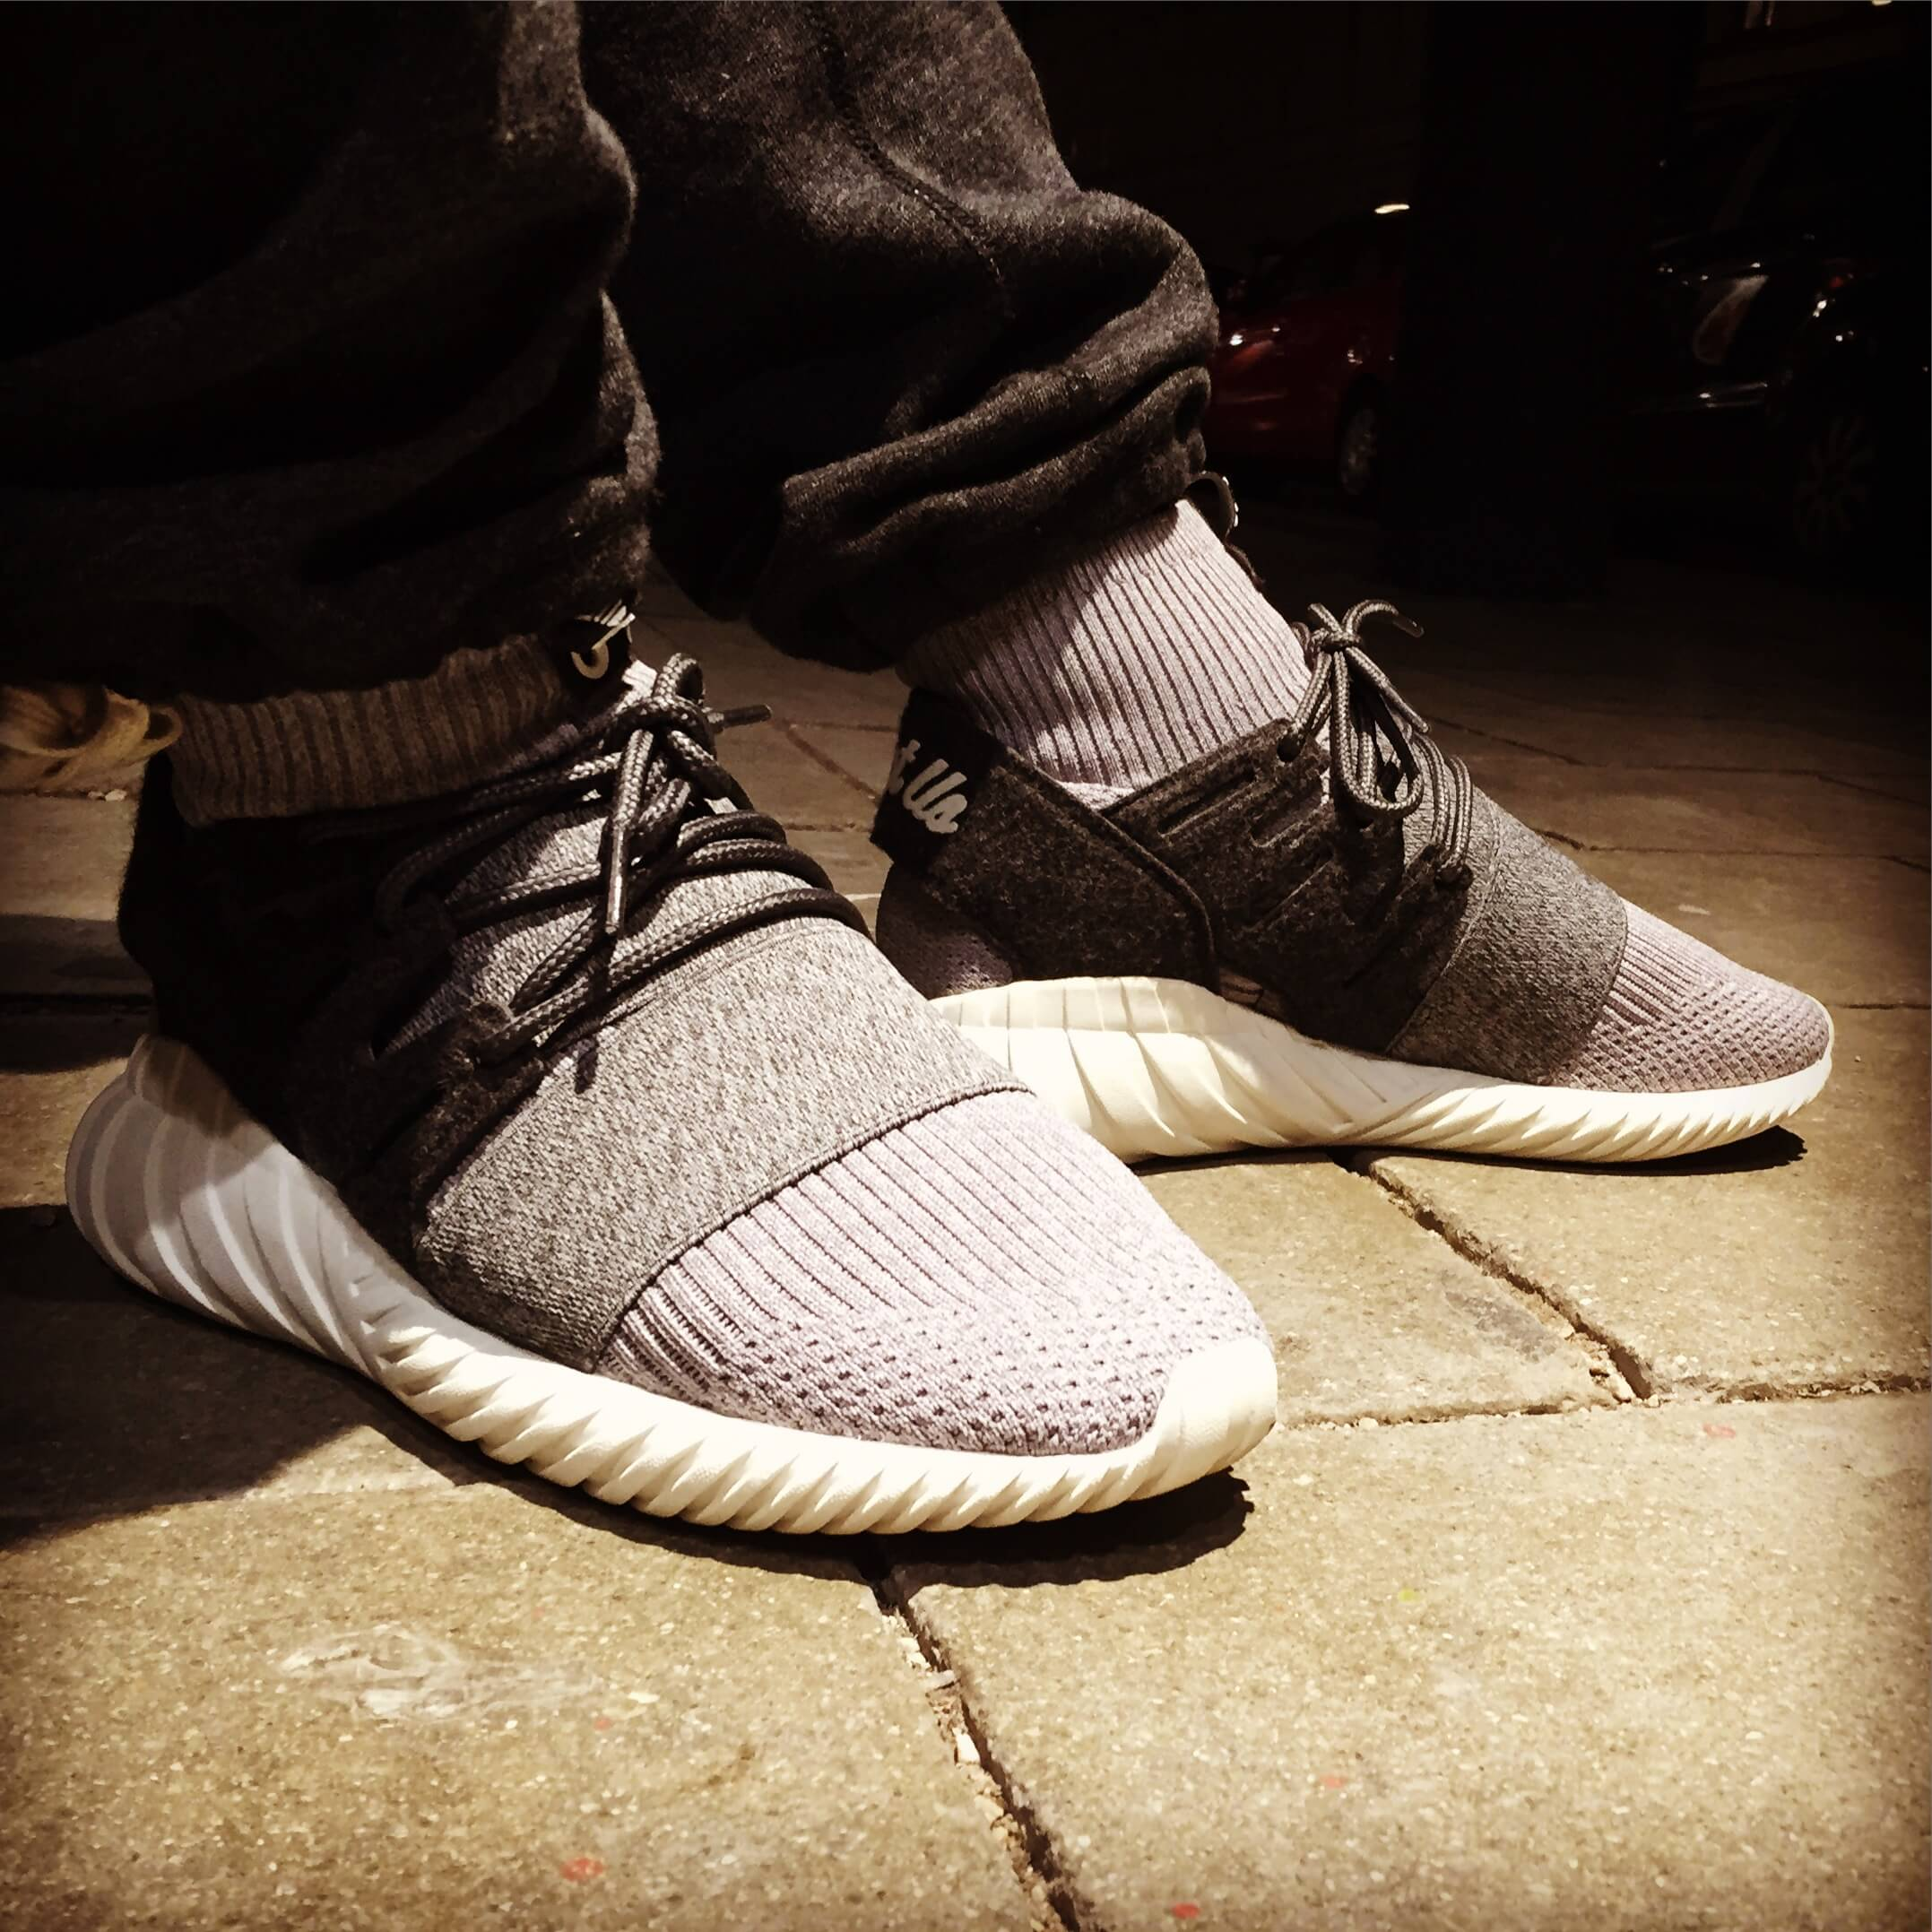 adidas Tubular Doom Primeknit Night Marine